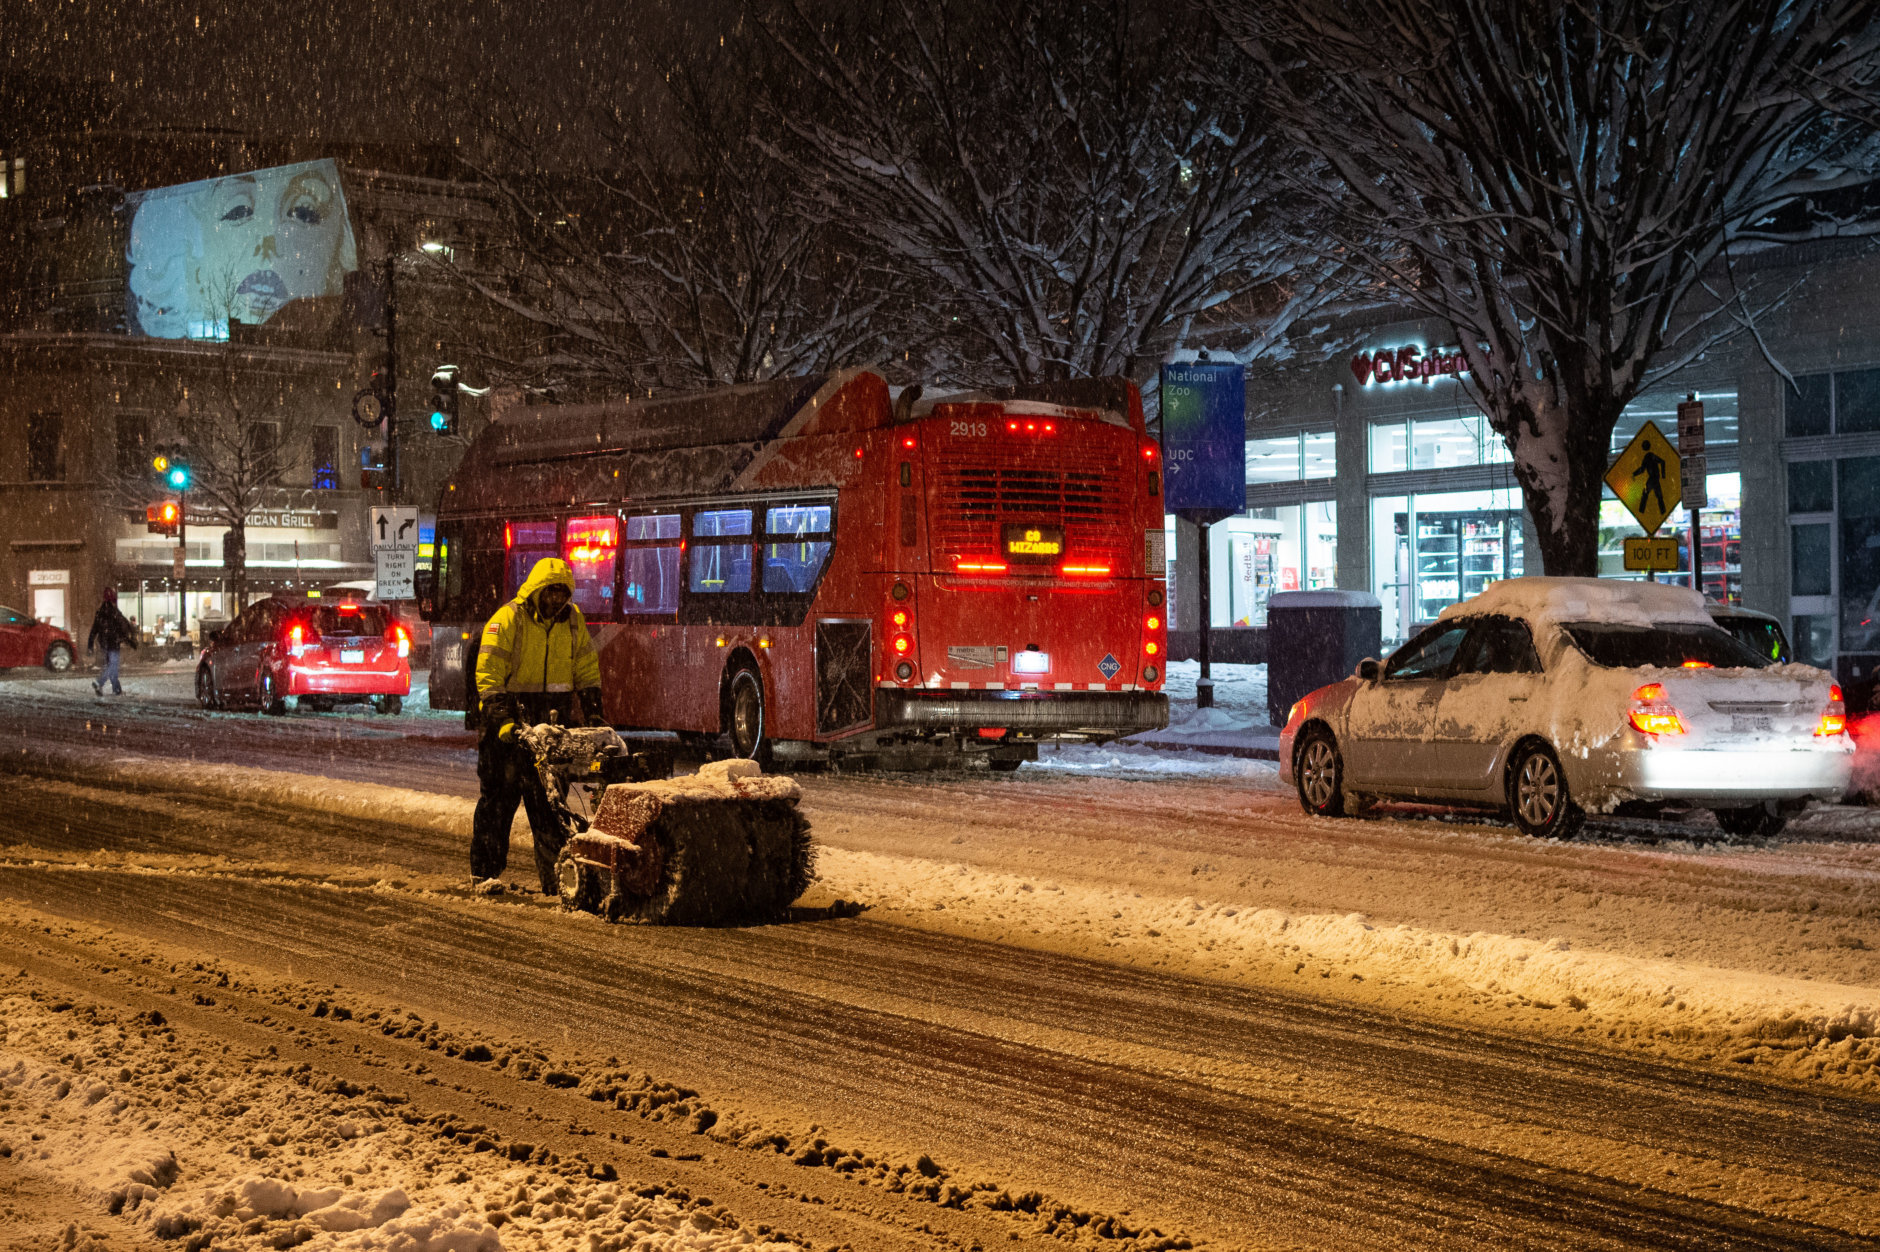 Work was underway to clear Calvert Street, NW on Sunday night, which had again become a slushy mess with heavier bands of snow moving into the area after a lull during the day. Temperatures were expected to drop further overnight, with a clear chance of widespread icing of roadways into Monday morning.(WTOP/Alejandro Alvarez)